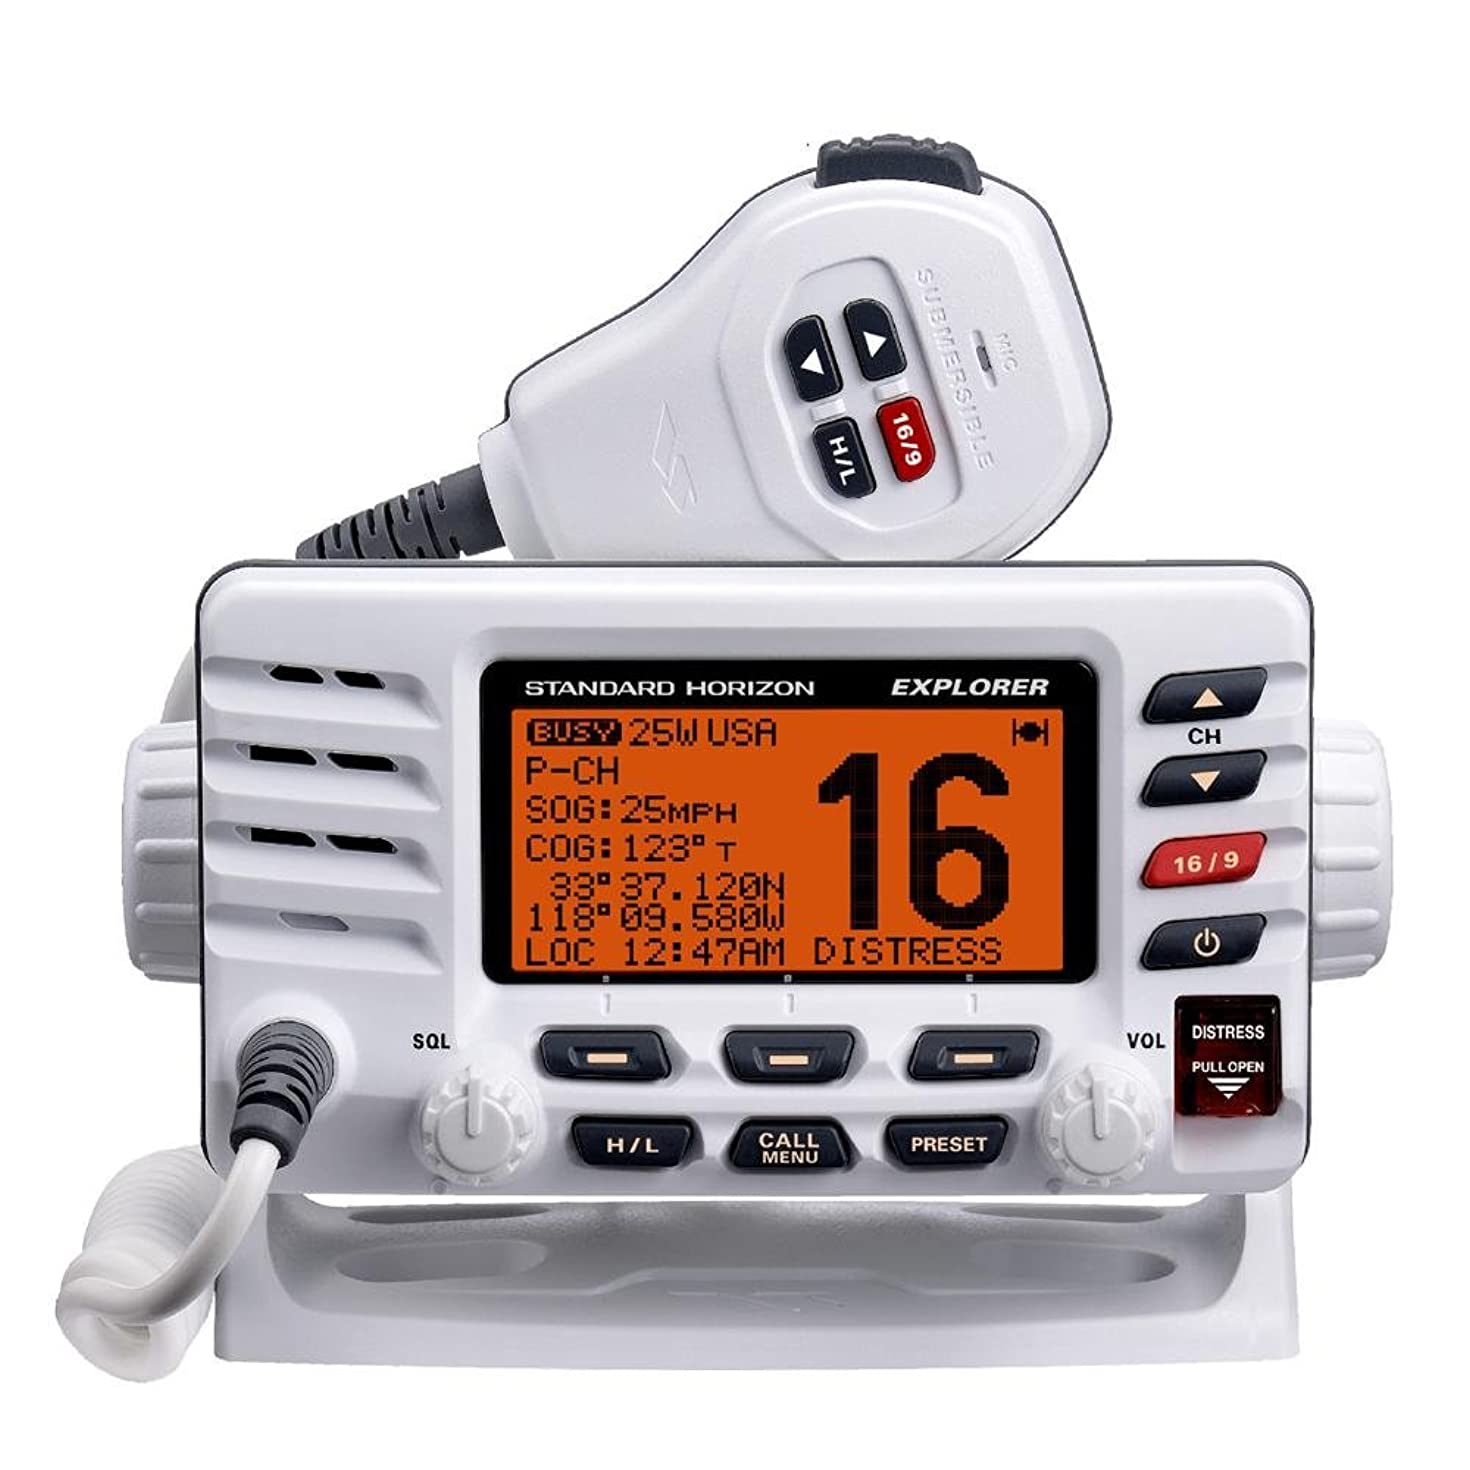 Standard Horizon Explorer GX1600 Fixed Mount VHF Radio Ultra Thin Class D- White